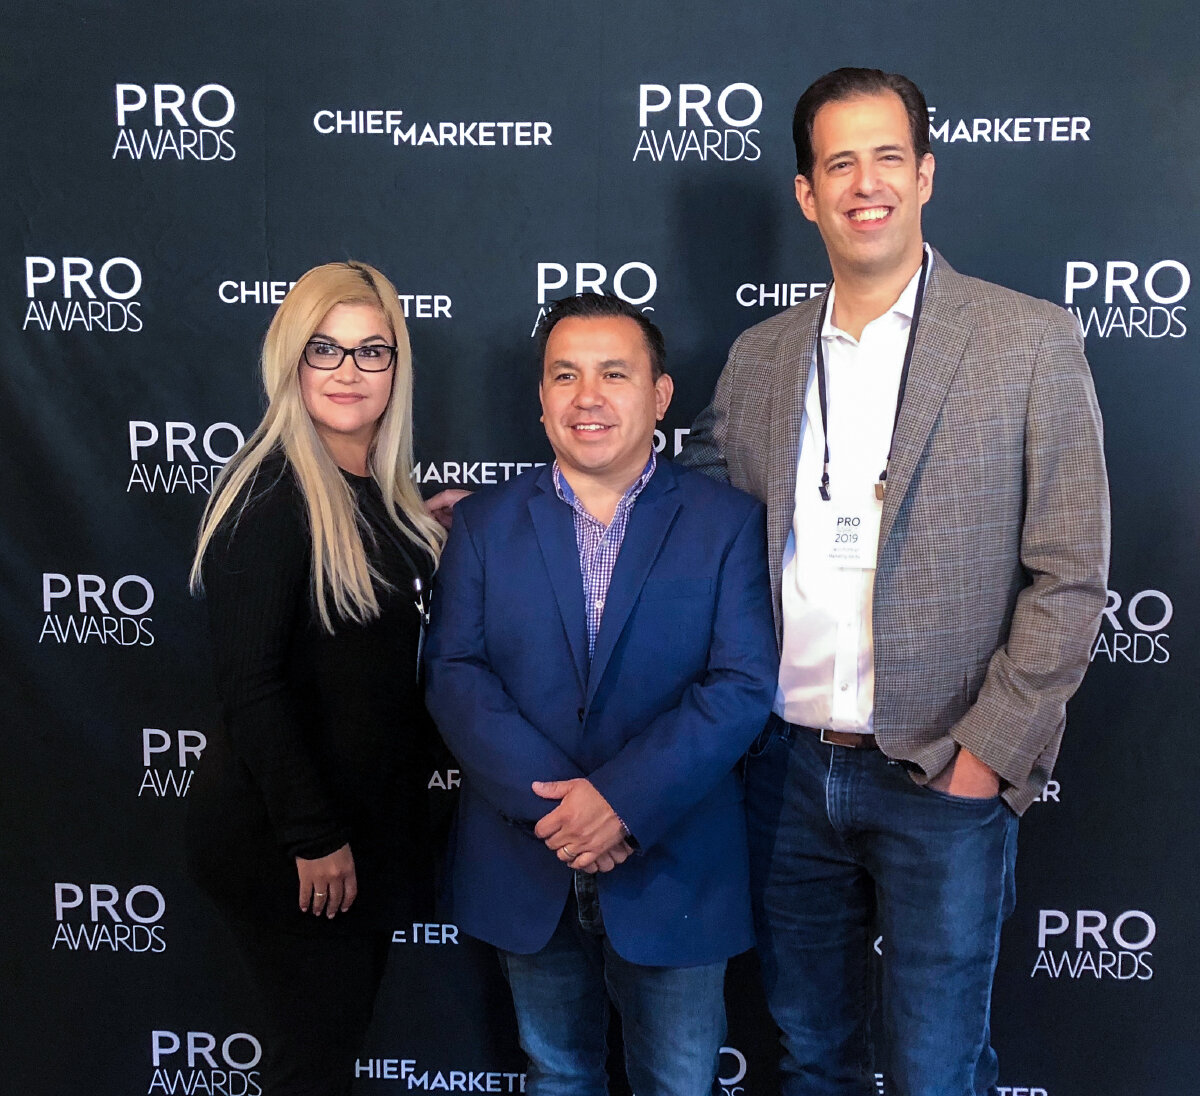 Liliana Miranda and David Rothkopf of Marketing Werks with Ruben Robledo of Univision